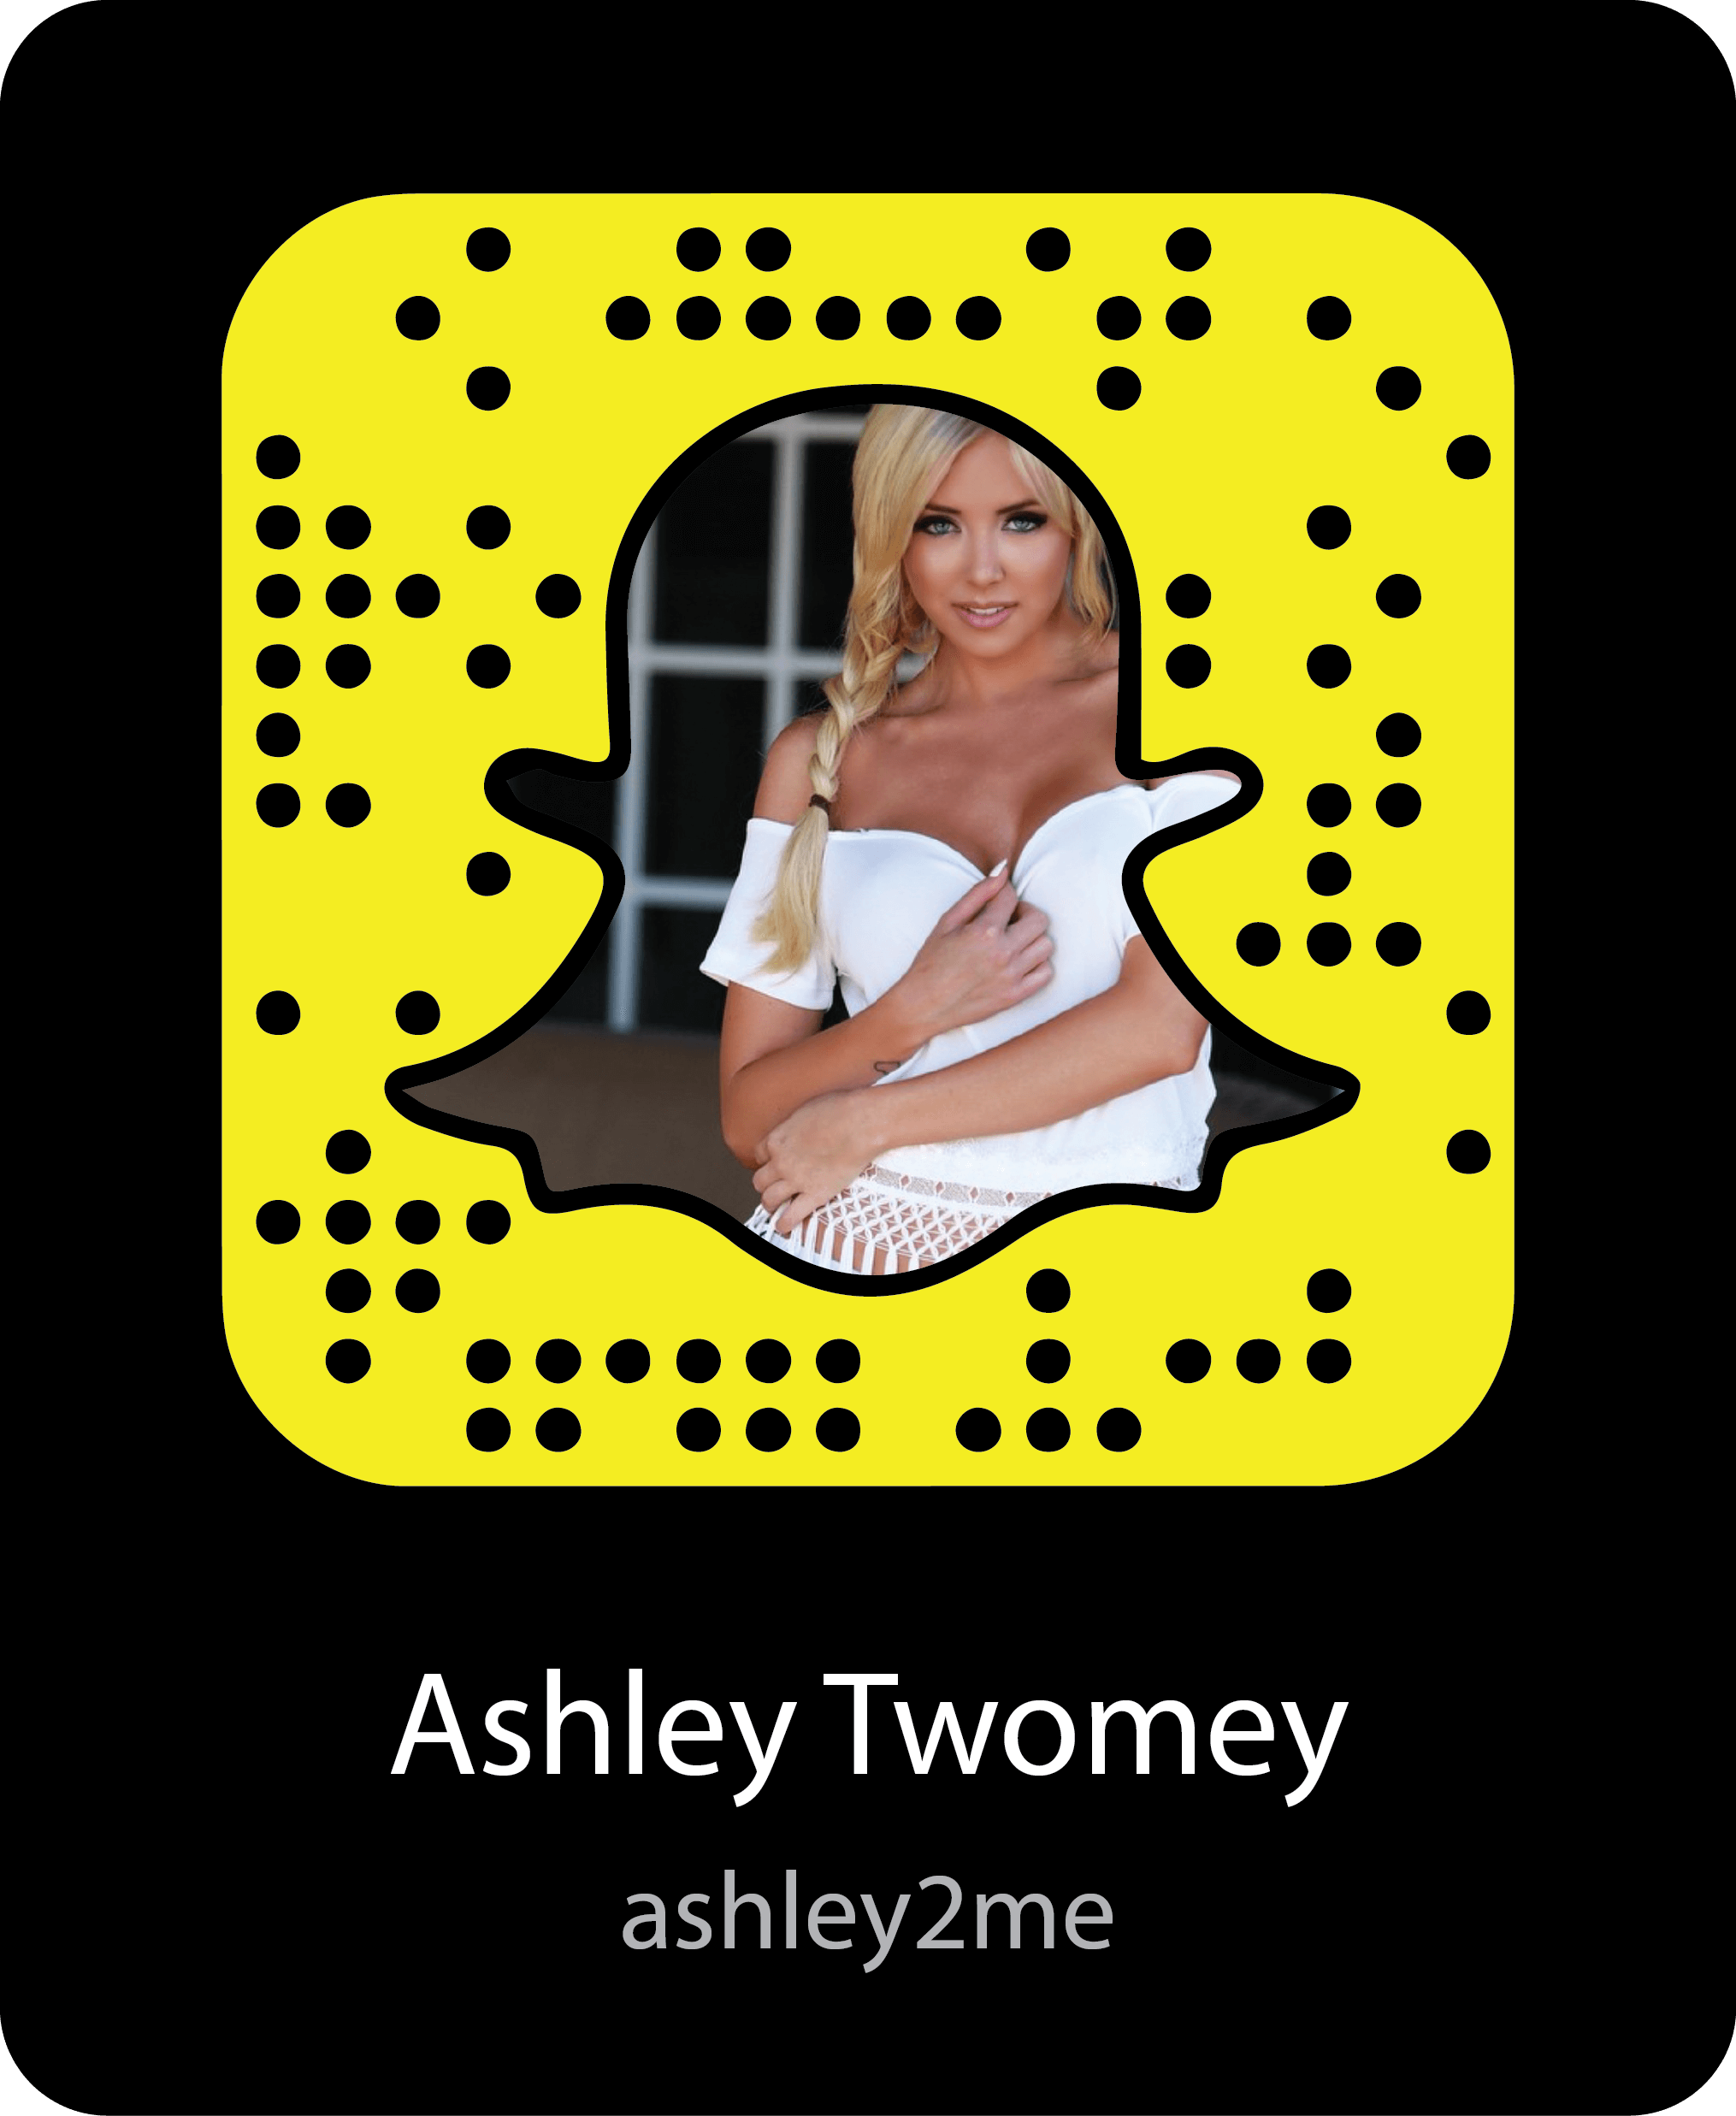 Sexy Snapcodes - The Hottest Girls On Snapchat  Snap -7186